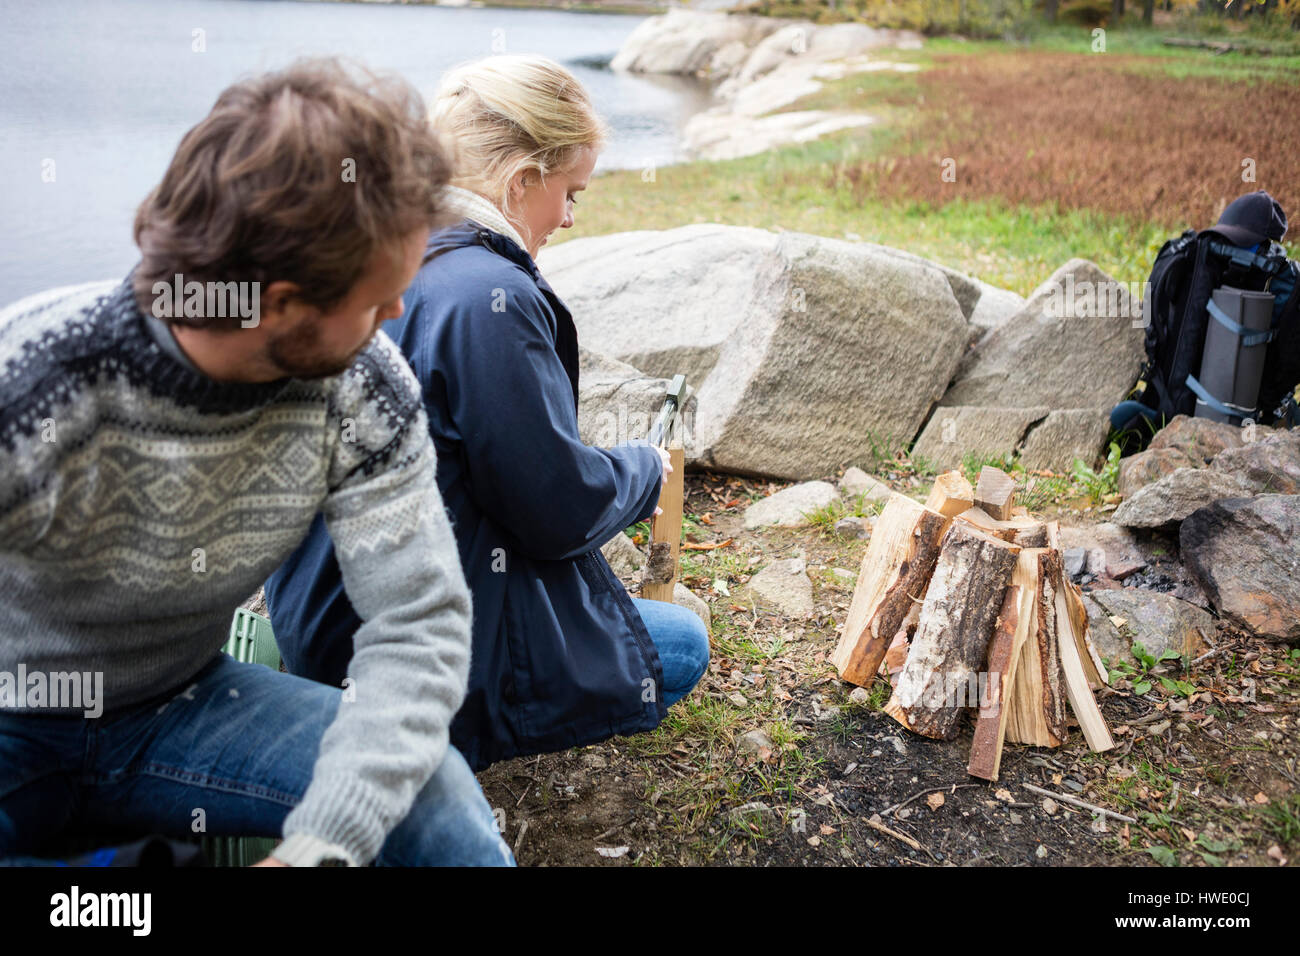 Man Looking At Woman Chopping Wood On Campsite - Stock Image